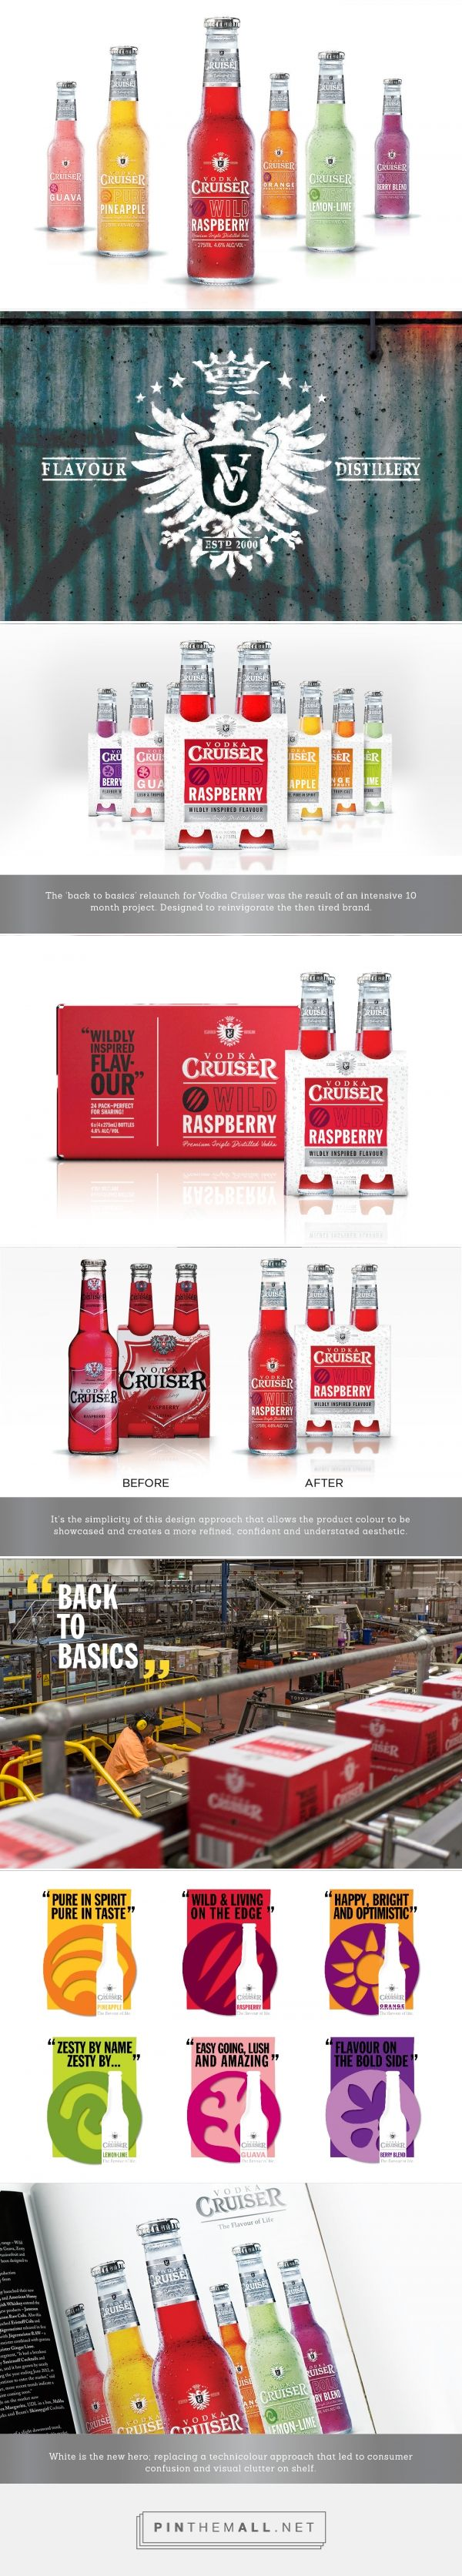 Gotta love a good rebrand that refreshes and adds value to a brand. Vodka Cruiser rebrand by The Edison Agency. Source: Behance. Pin curated by #SFields99 #packaging #design #inspiration #ideas #rebrand #product #creative #innovation #backtobasics #vodka #mixers #alcoholic #beverages